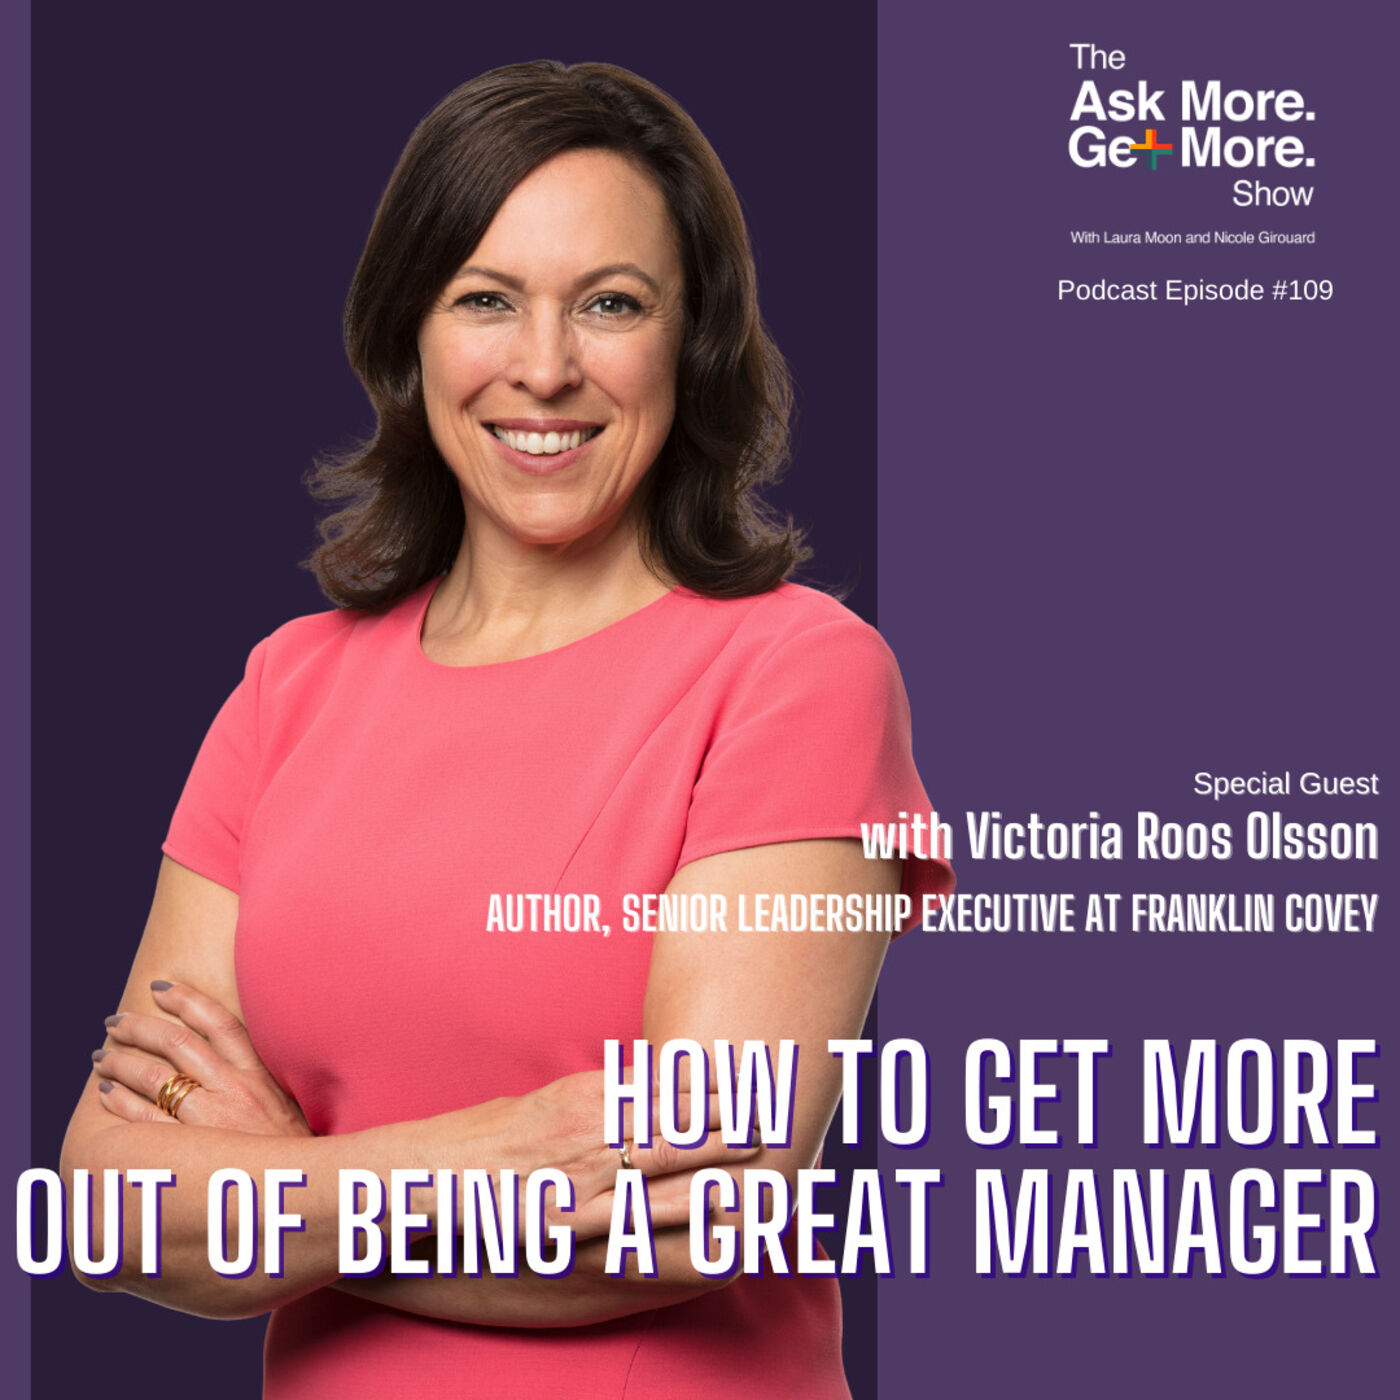 Everyone Deserves a Great Manager [Victoria Roos Olsson]